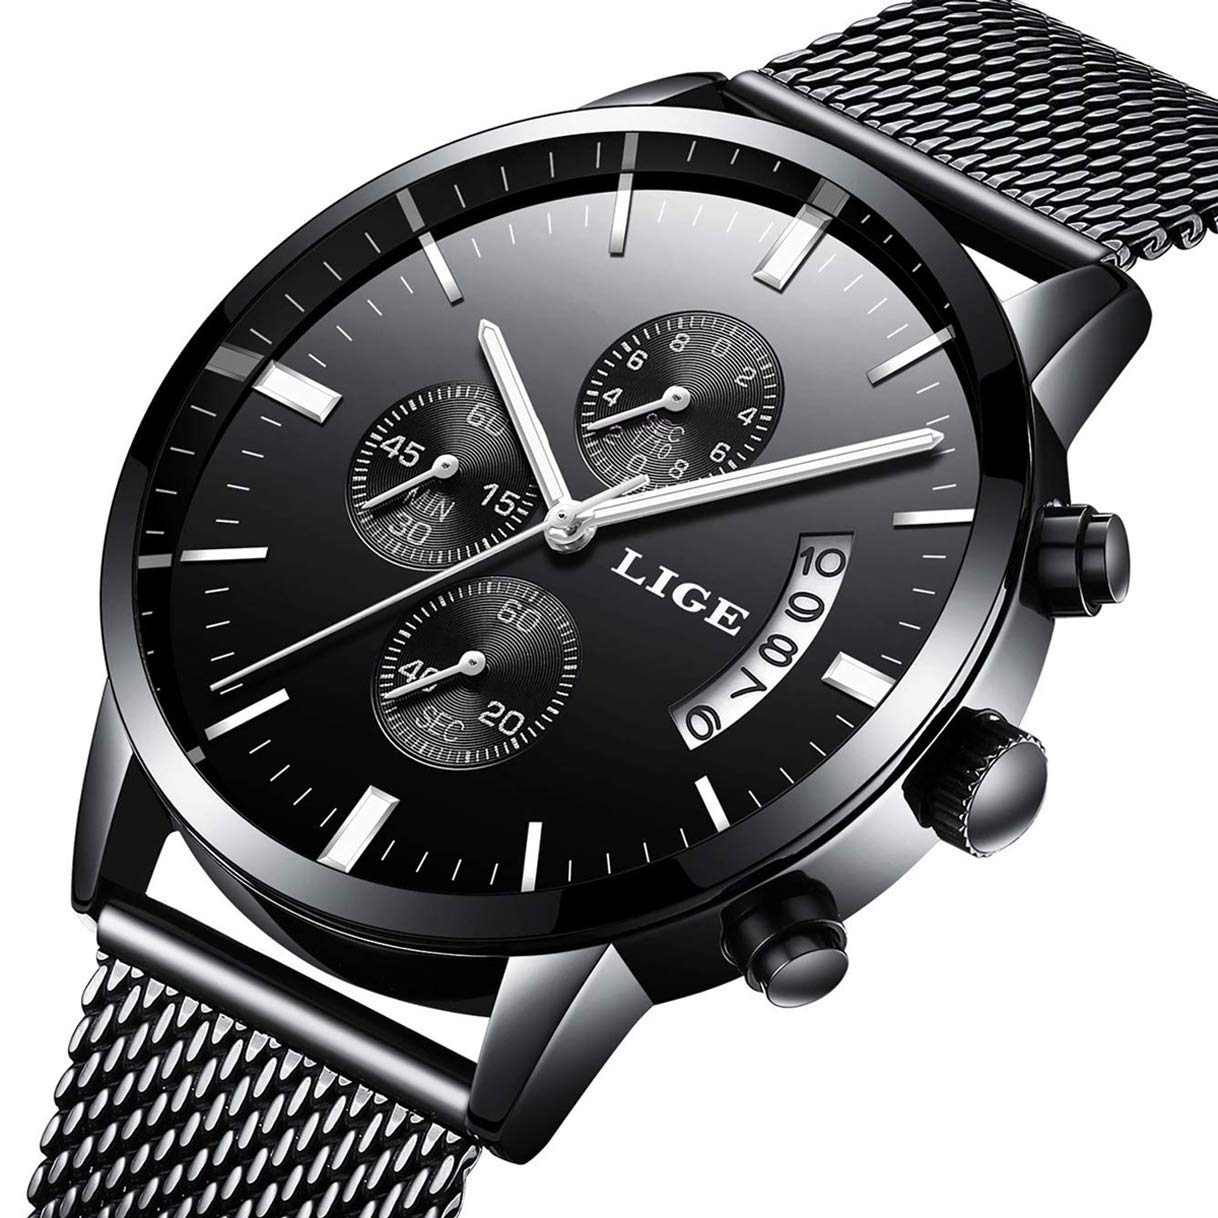 f979bddd7e Amazon.com: Watch Men Casual Stylish Stainless Steel Watch with Milanese  Mesh Band, Waterproof Black Multifunctional Watch for Men: Watches